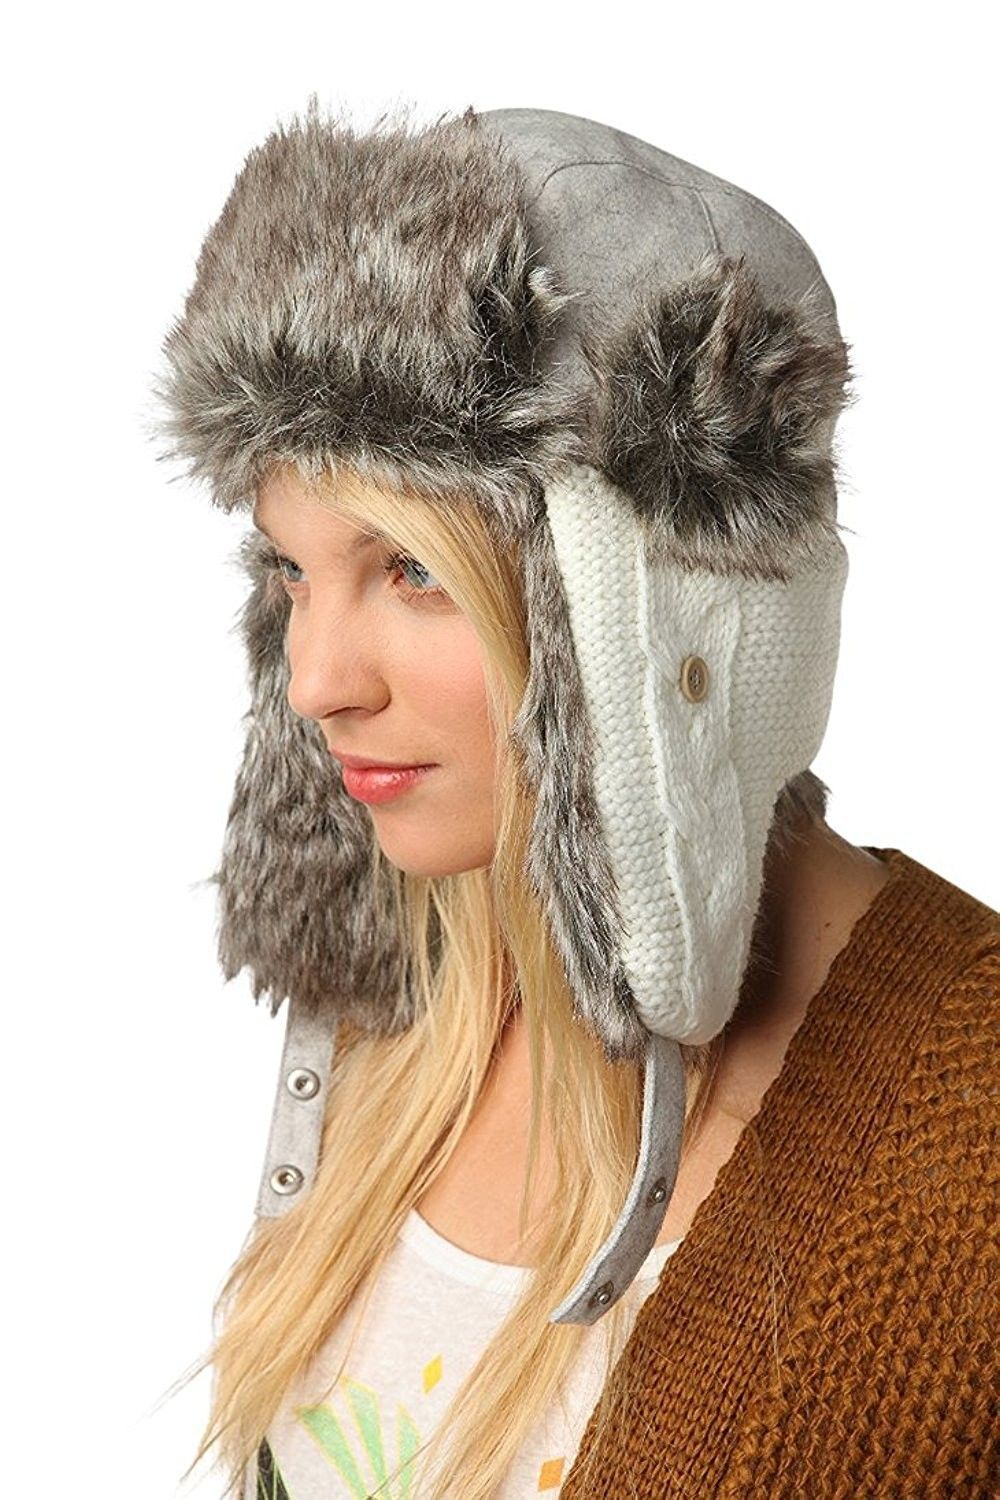 a9de5caf630 Wool Faux Fur Comfortable Warm Cute Winter Trapper Aviator Hat - Knitted  White Grey - CS1860UMTMI - Hats   Caps